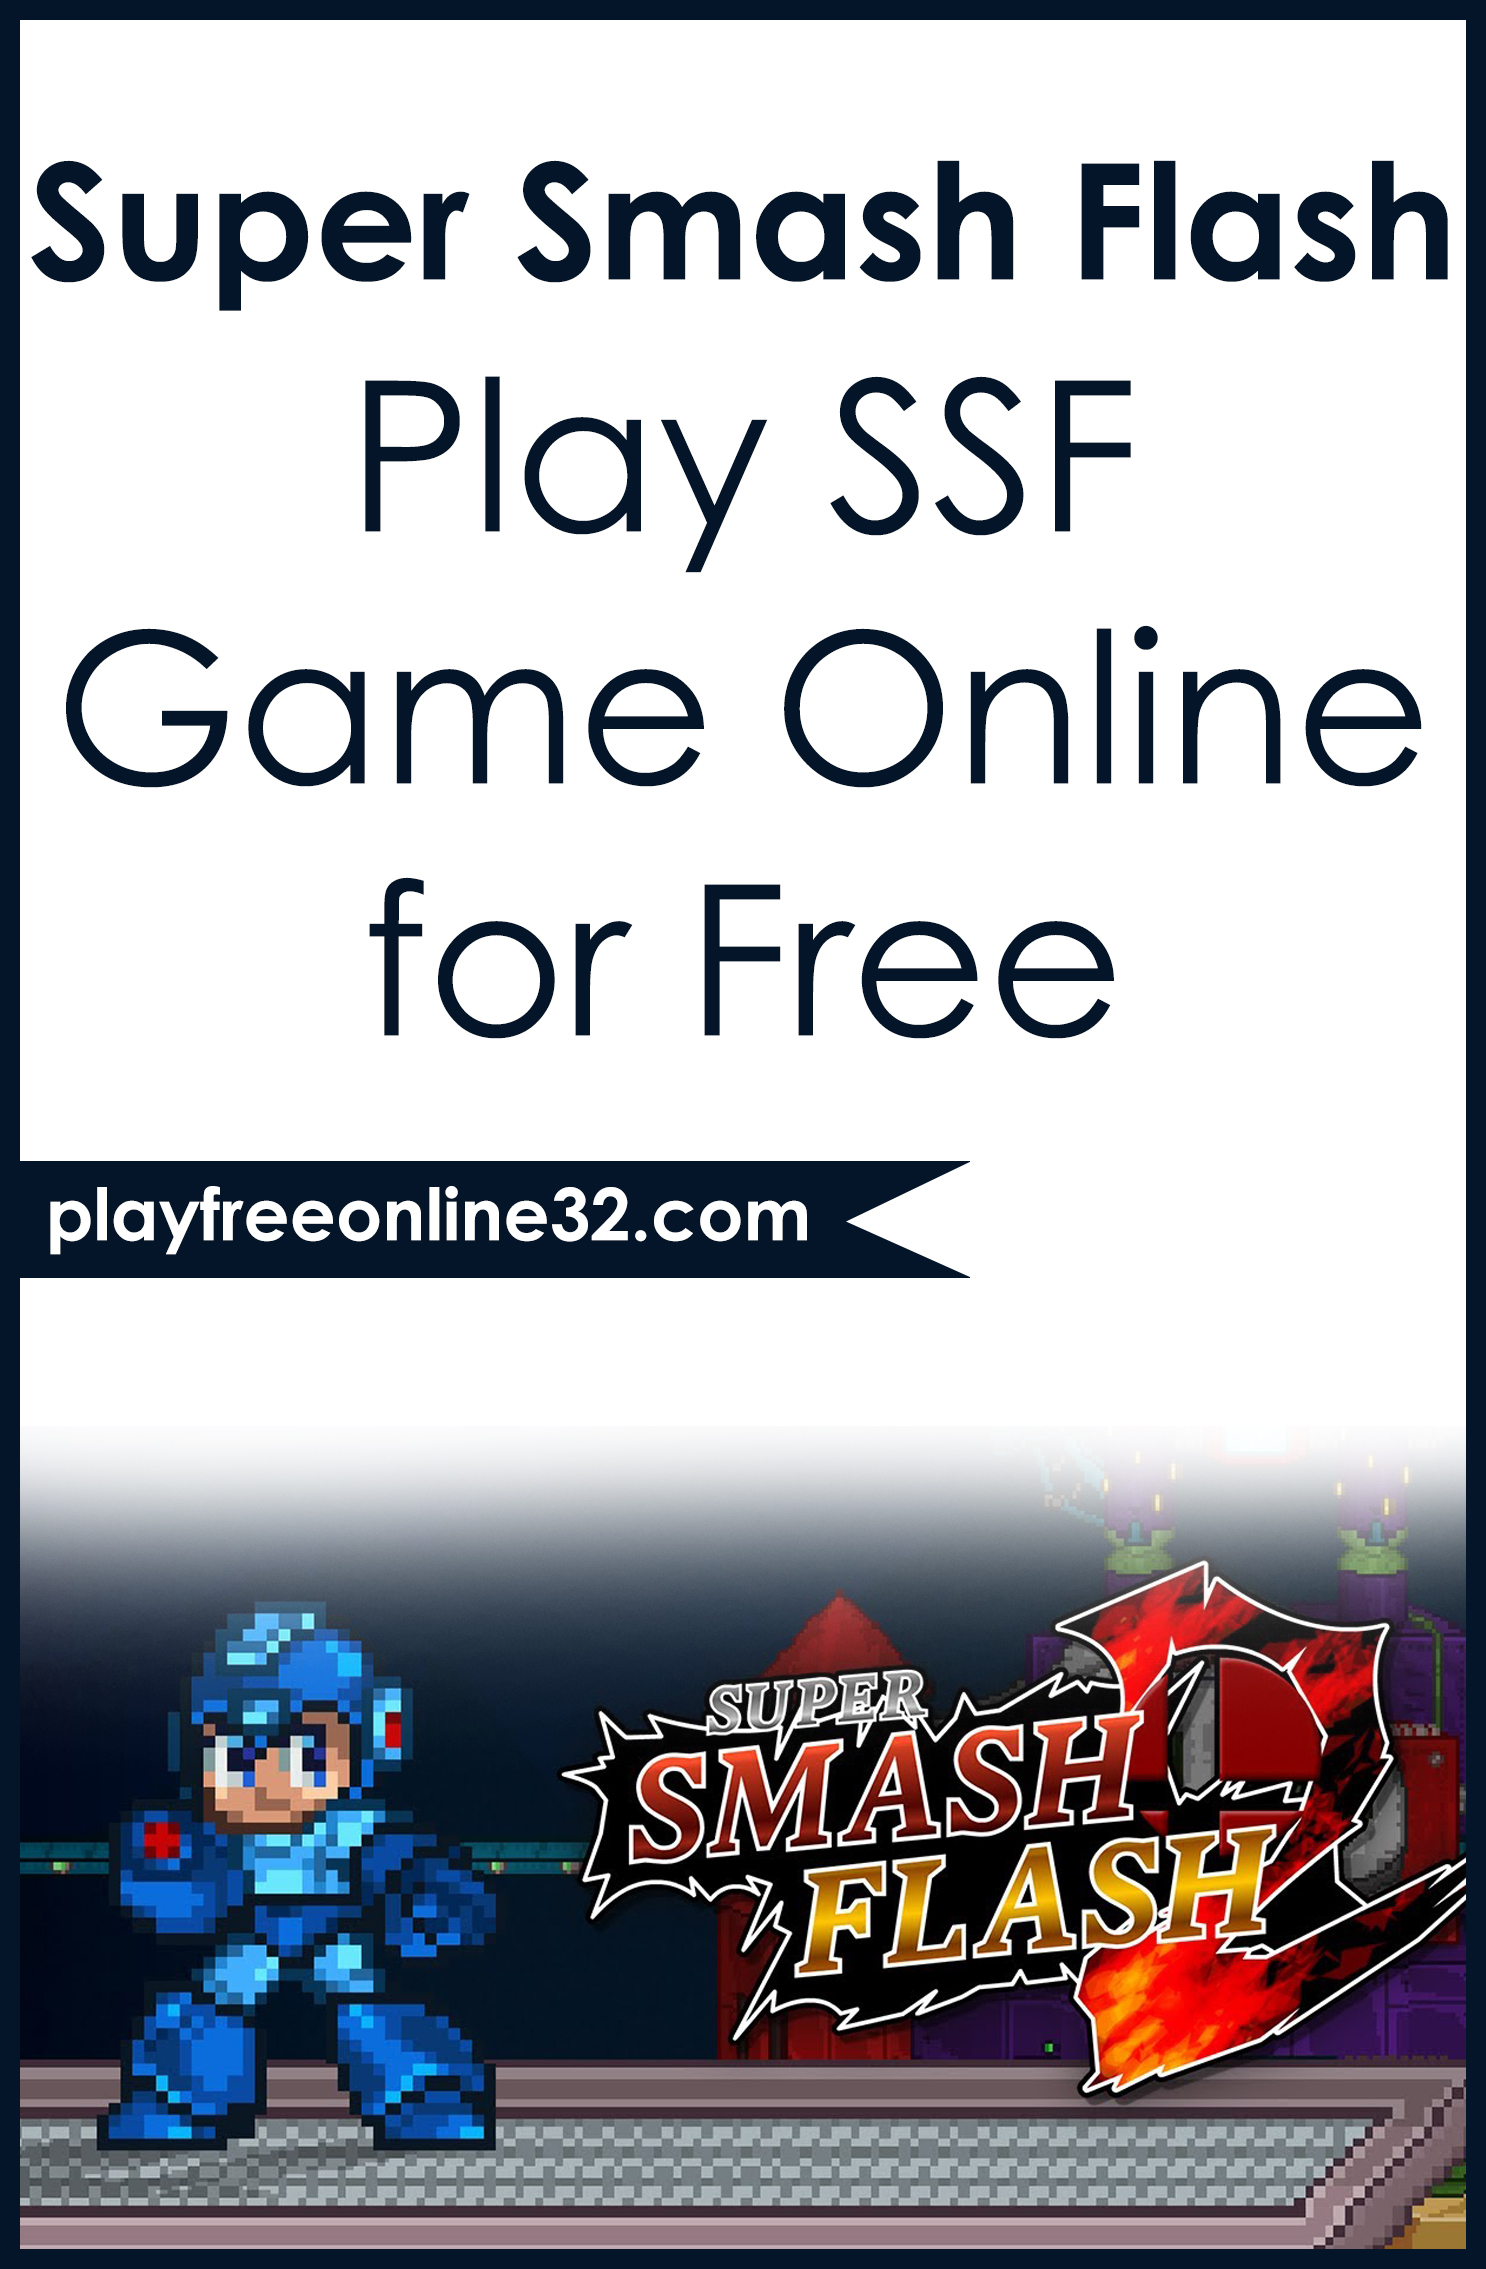 Super Smash Flash • Play SSF Game Online for Free Pinterest